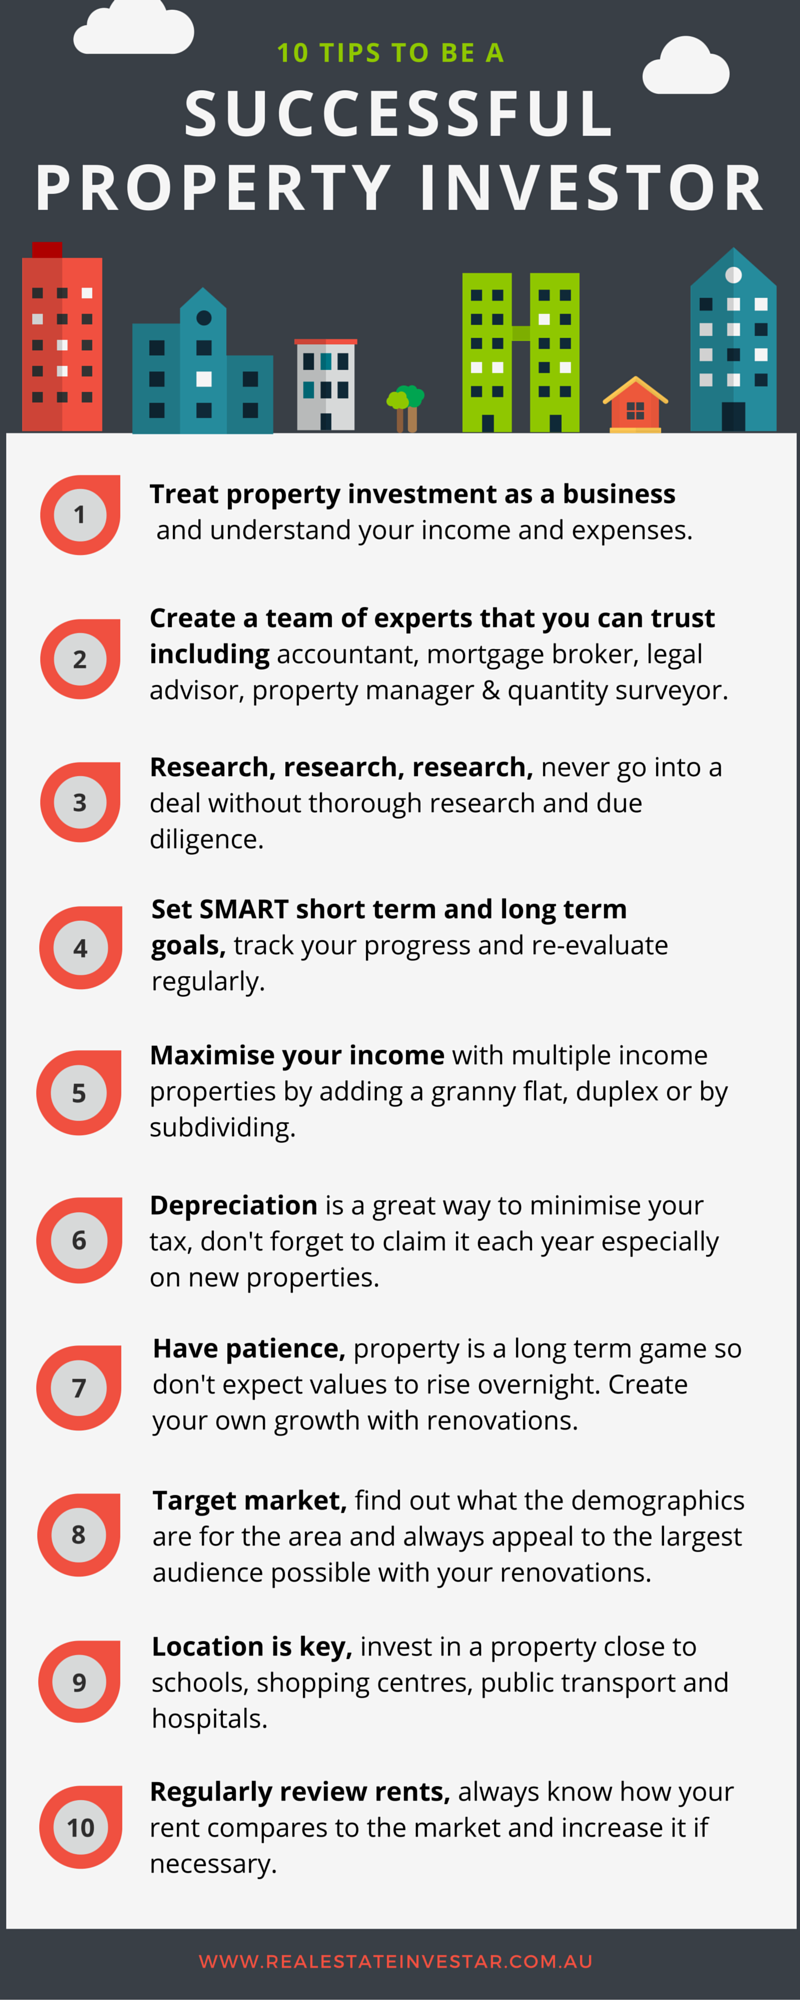 tips to be a successful property investor